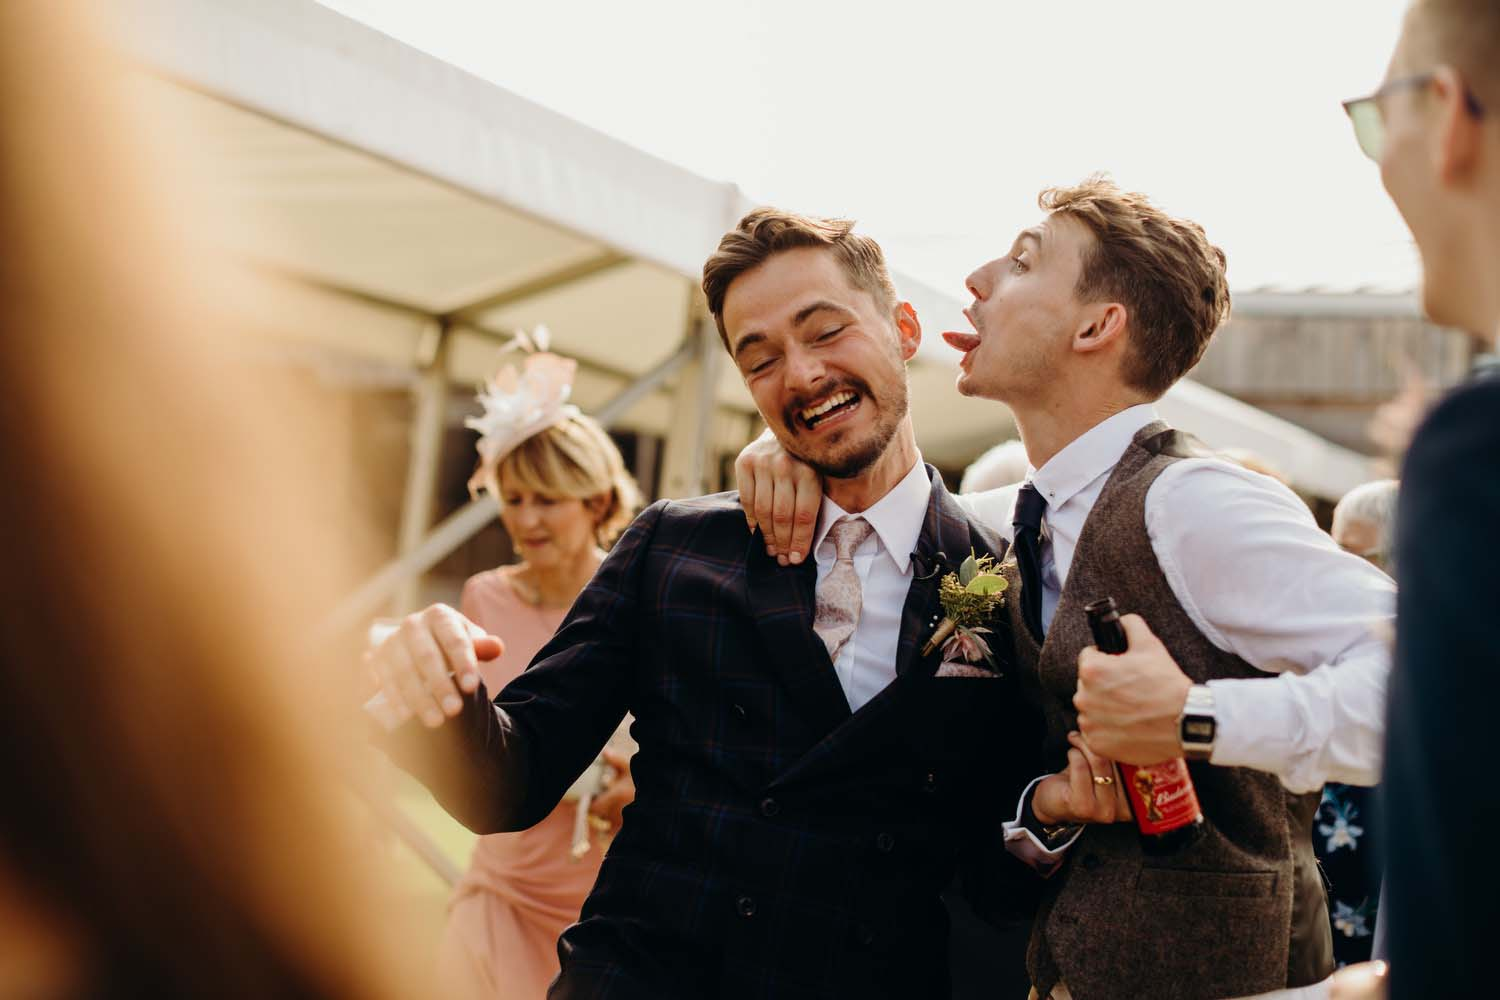 Guest tries to lick groom